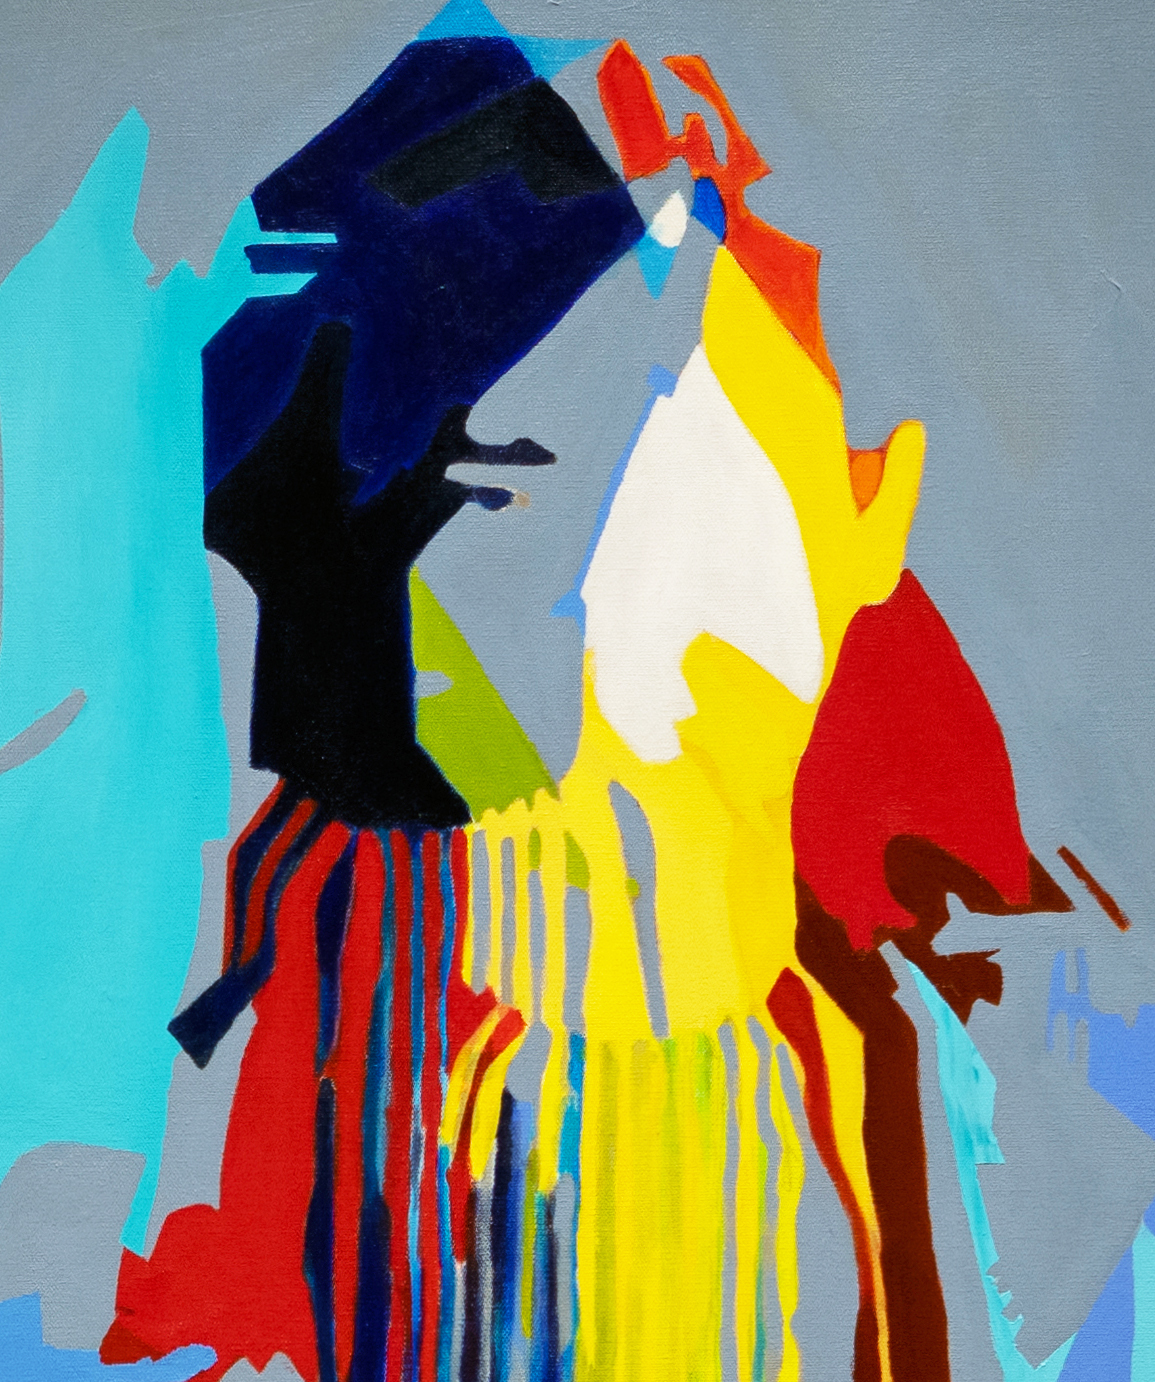 Detail image of, 7:30 Resolute, 2019, 36 x 48 inches, acrylic on canvas depicts the silhouette of a female figure with arms crossed.